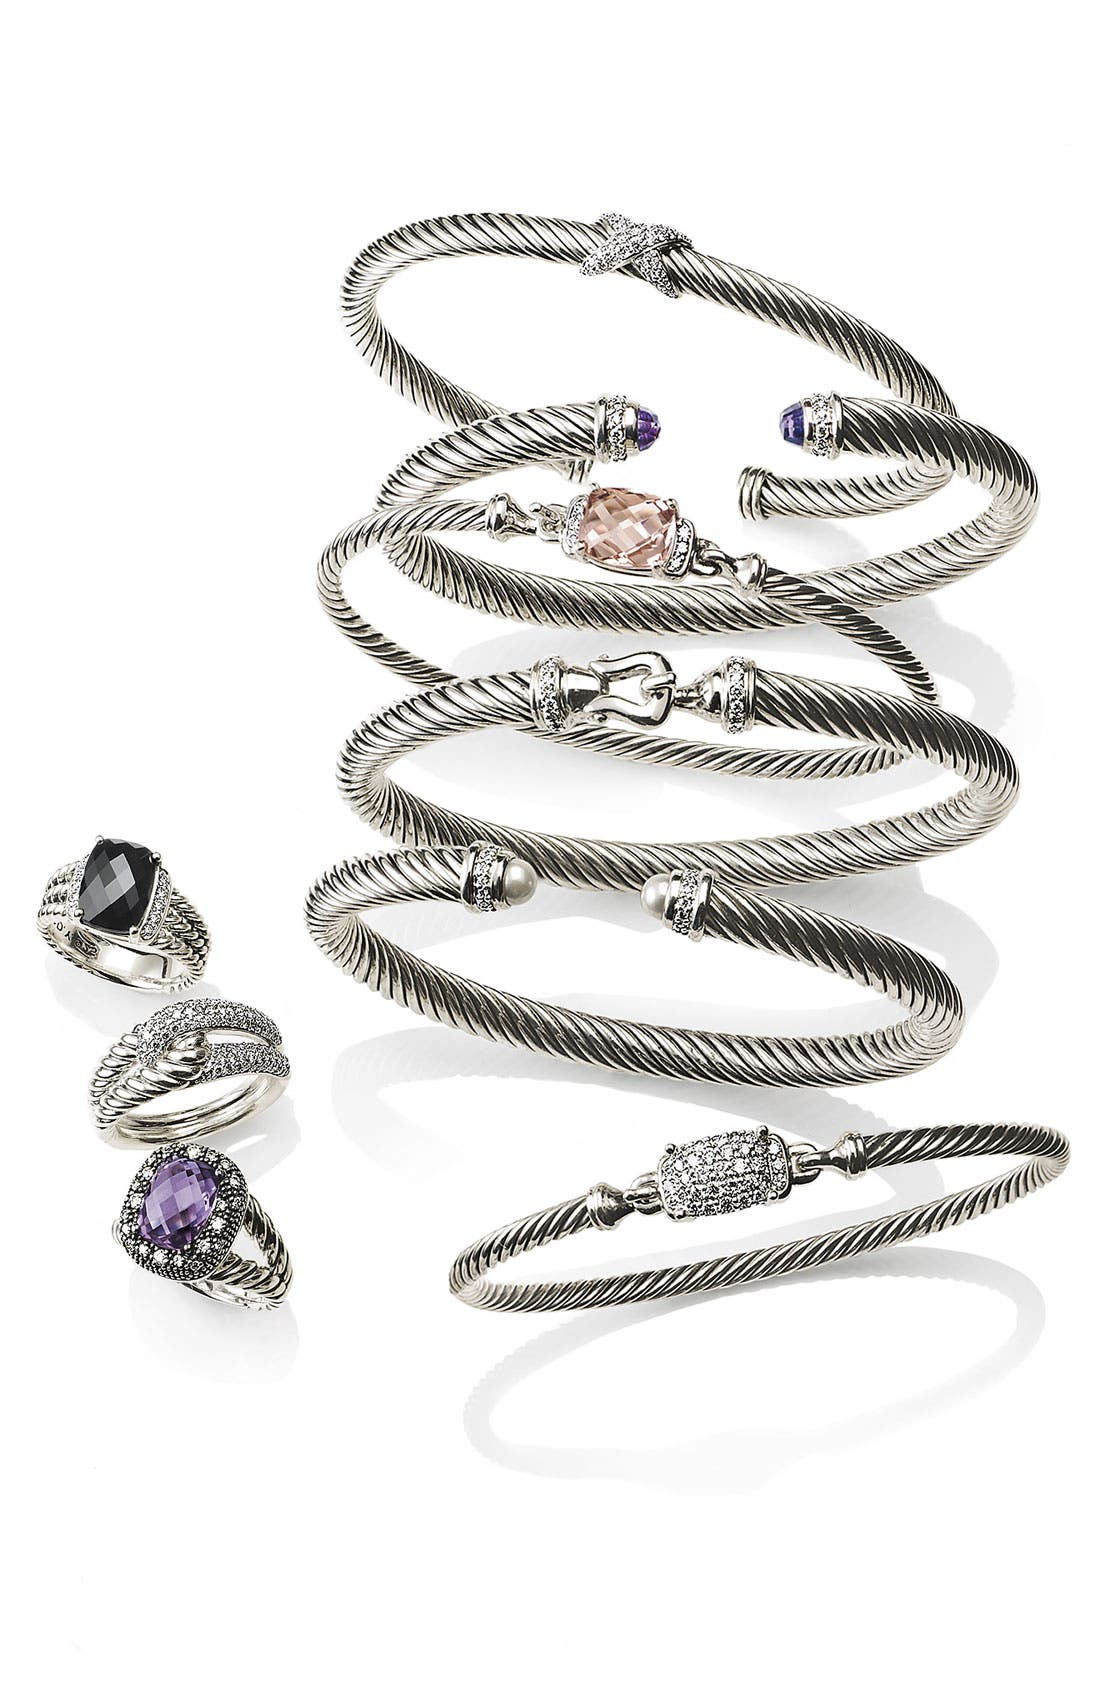 Alternate Image 3  - David Yurman 'Petite Wheaton' Bracelet with Semiprecious Stone & Diamonds